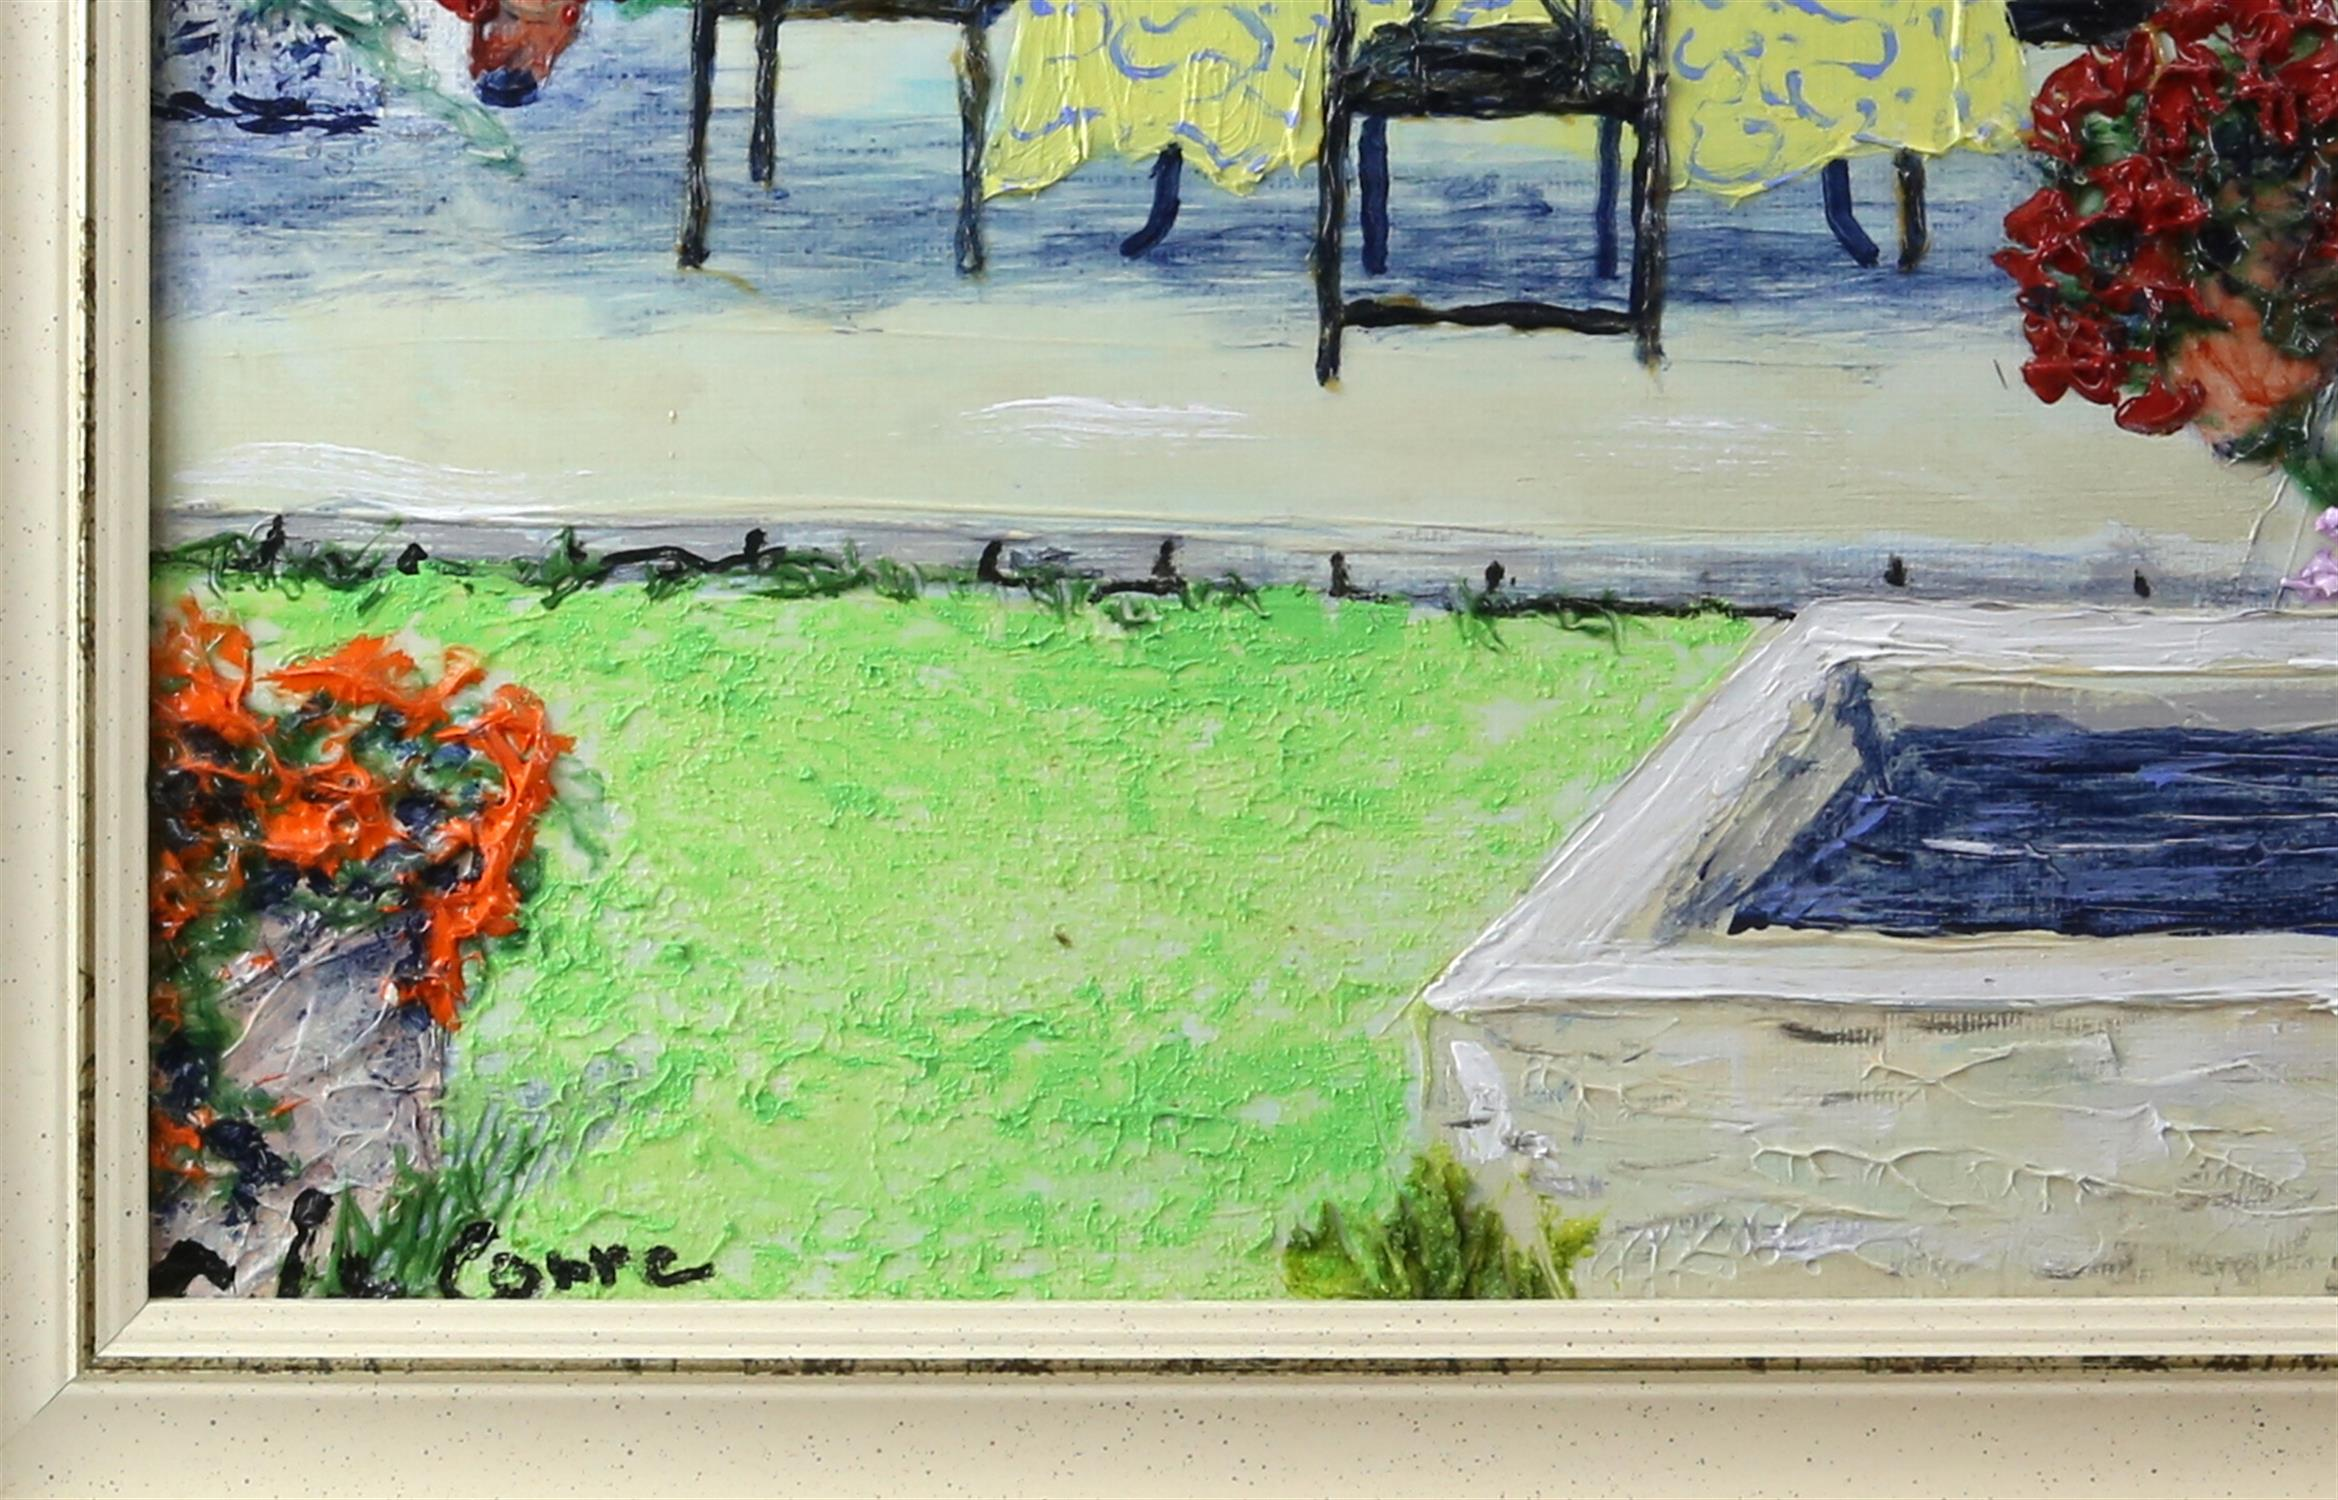 Guy le Corre, French 20th/21st century, 'La Fontaine Cote Jardin', singed, titled verso, - Image 3 of 4